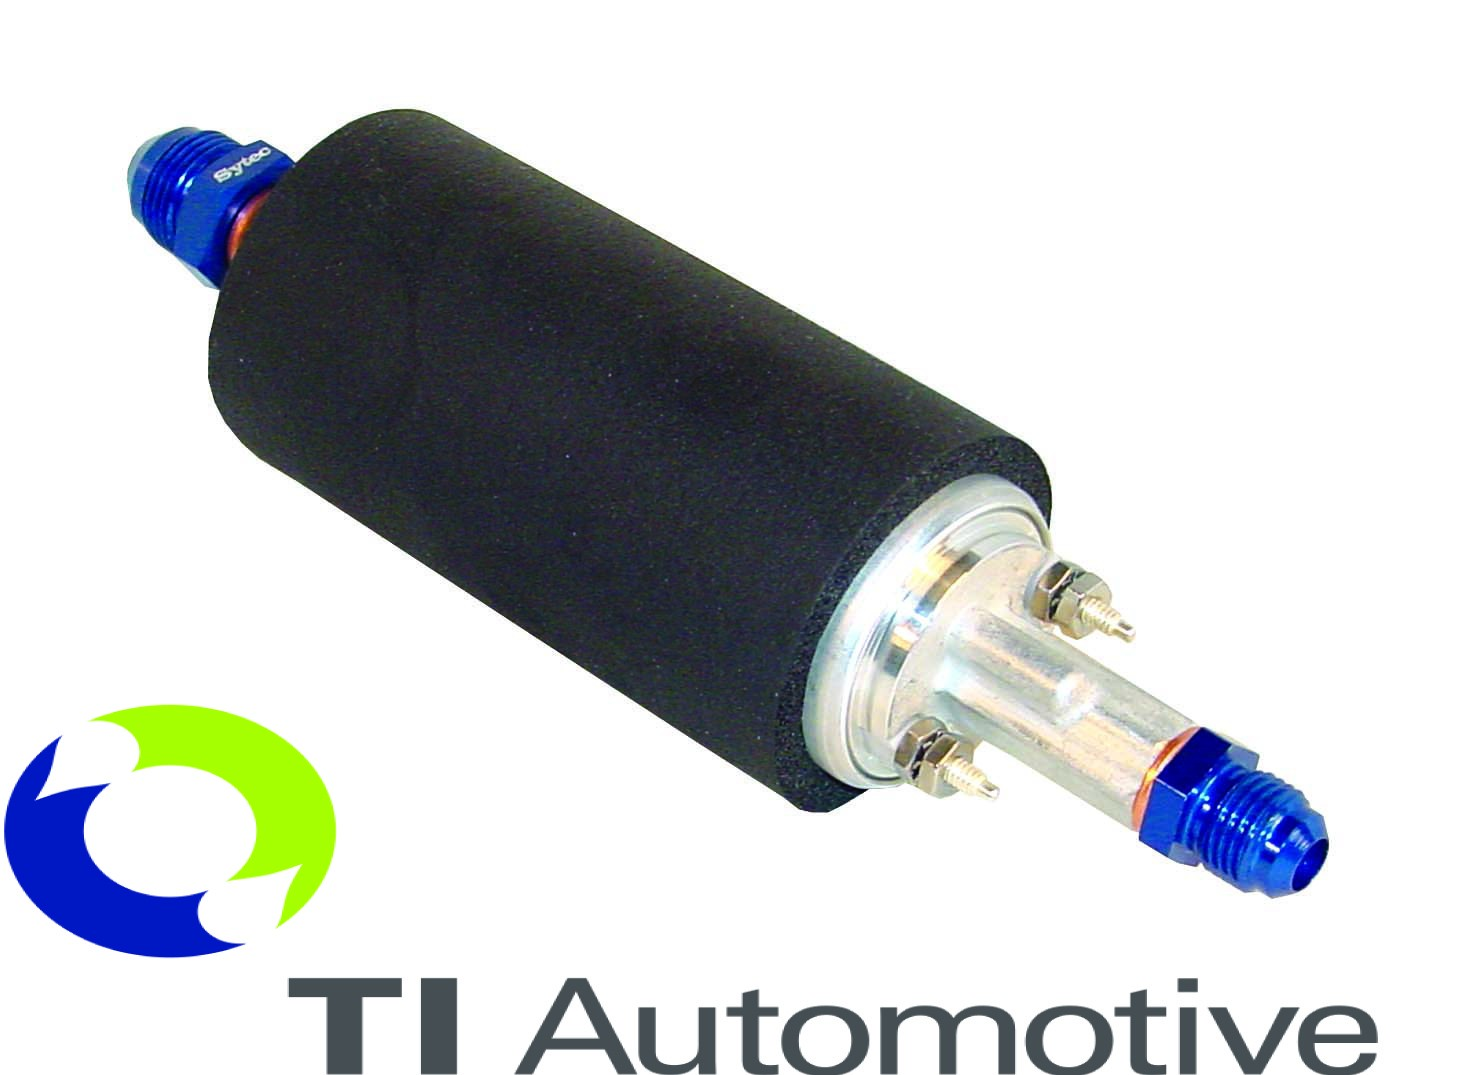 Ti Automotive (Walbro) Fuel Pumps - Out of Tank